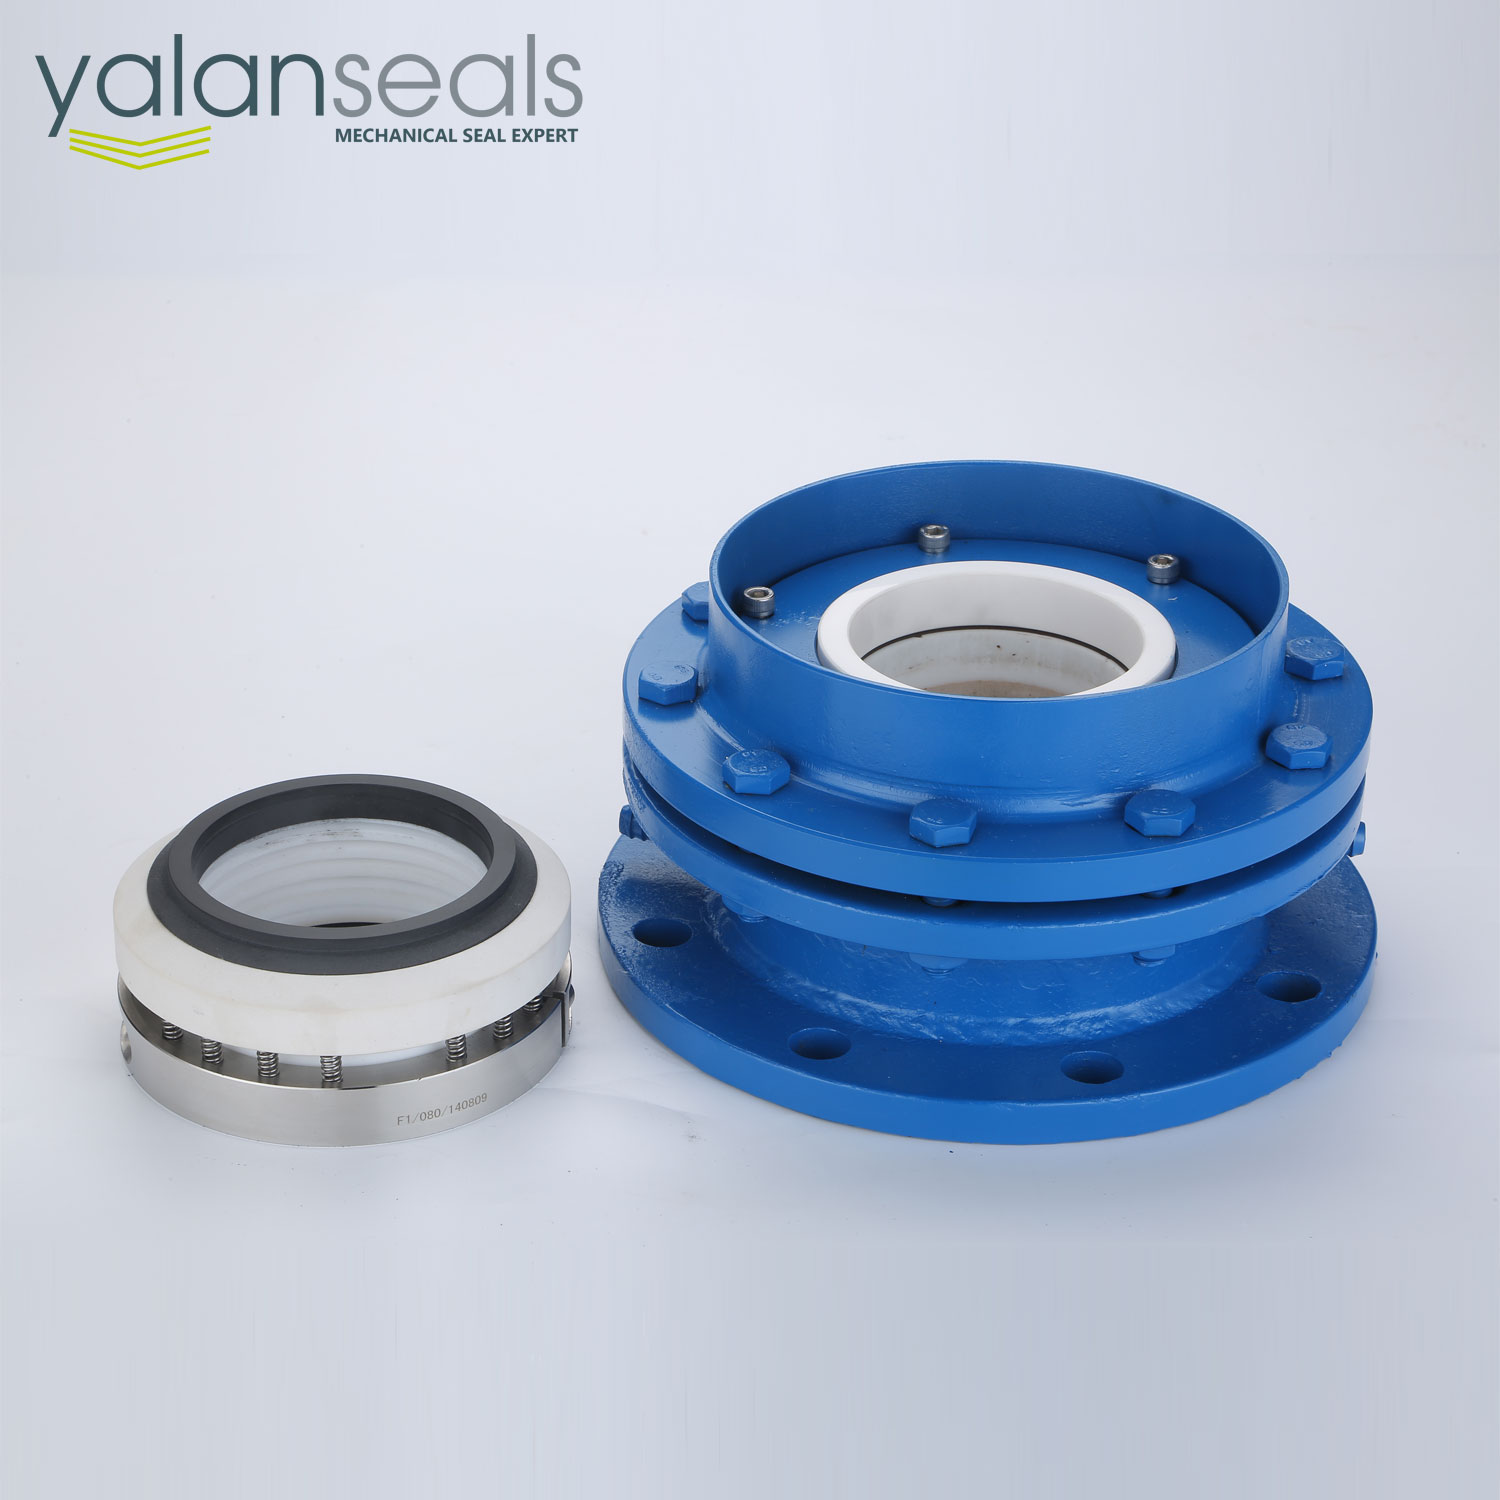 Type 212 Mechanical Seal with Oil Basin for Mixers